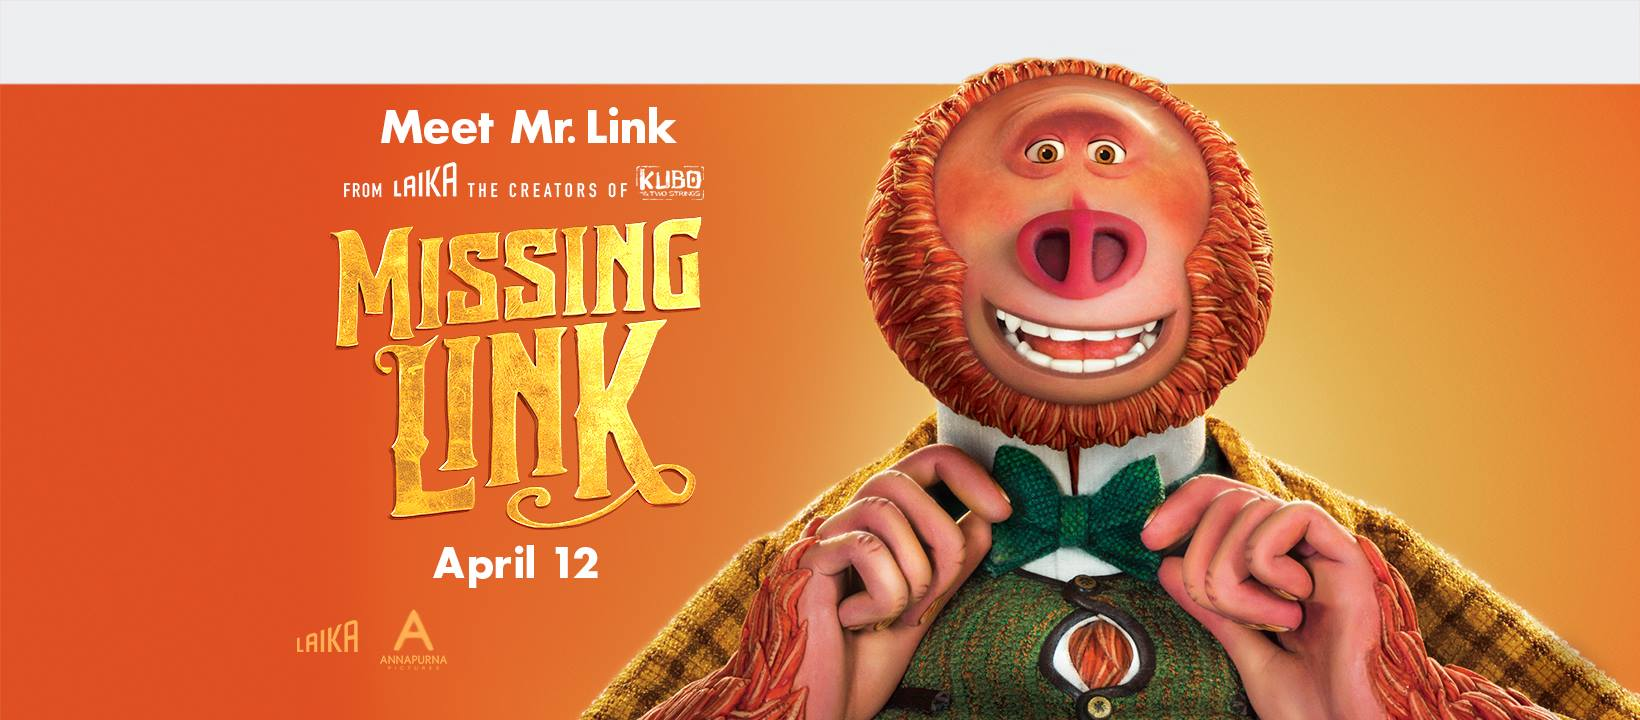 #Win $50 Fandango GC and Missing Link Prize Pack! US, ends 4/17 #MissingLink